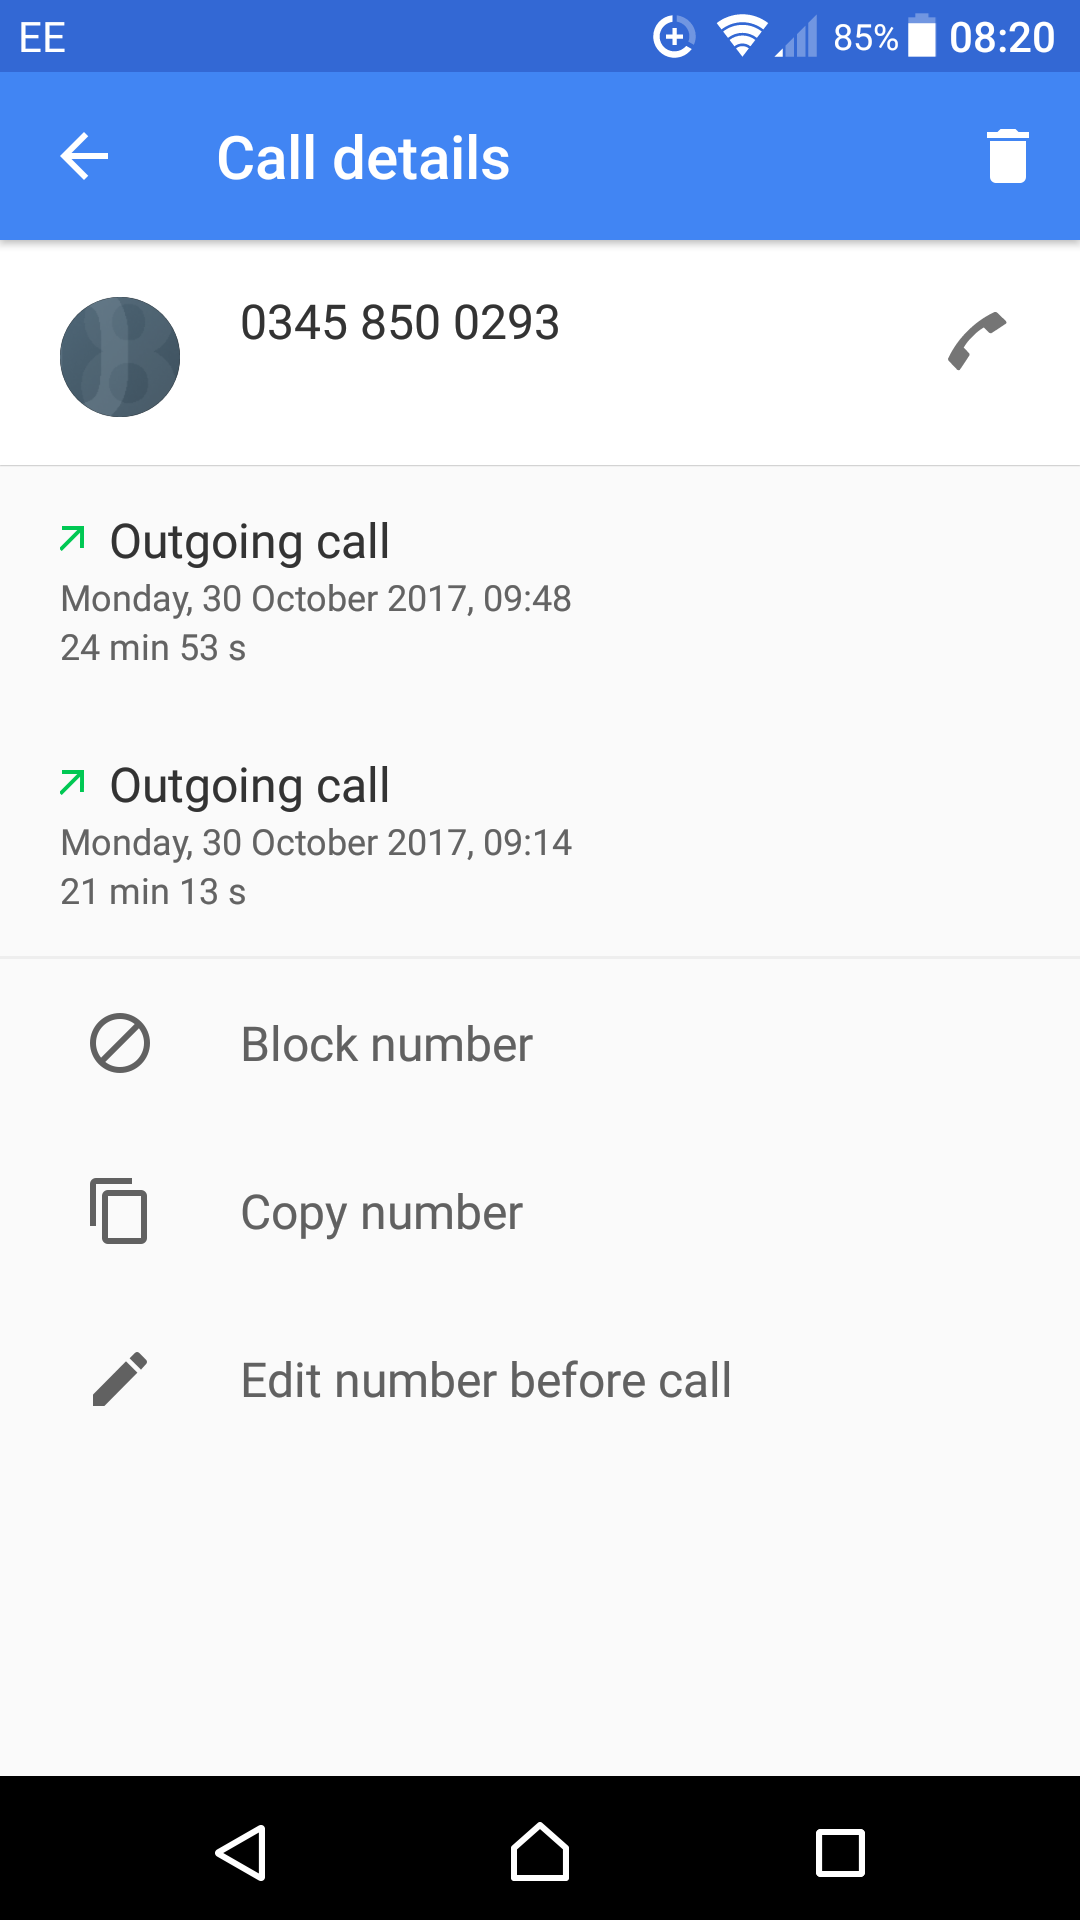 Total of 40 minutes and more on hold to the DWP's Universal